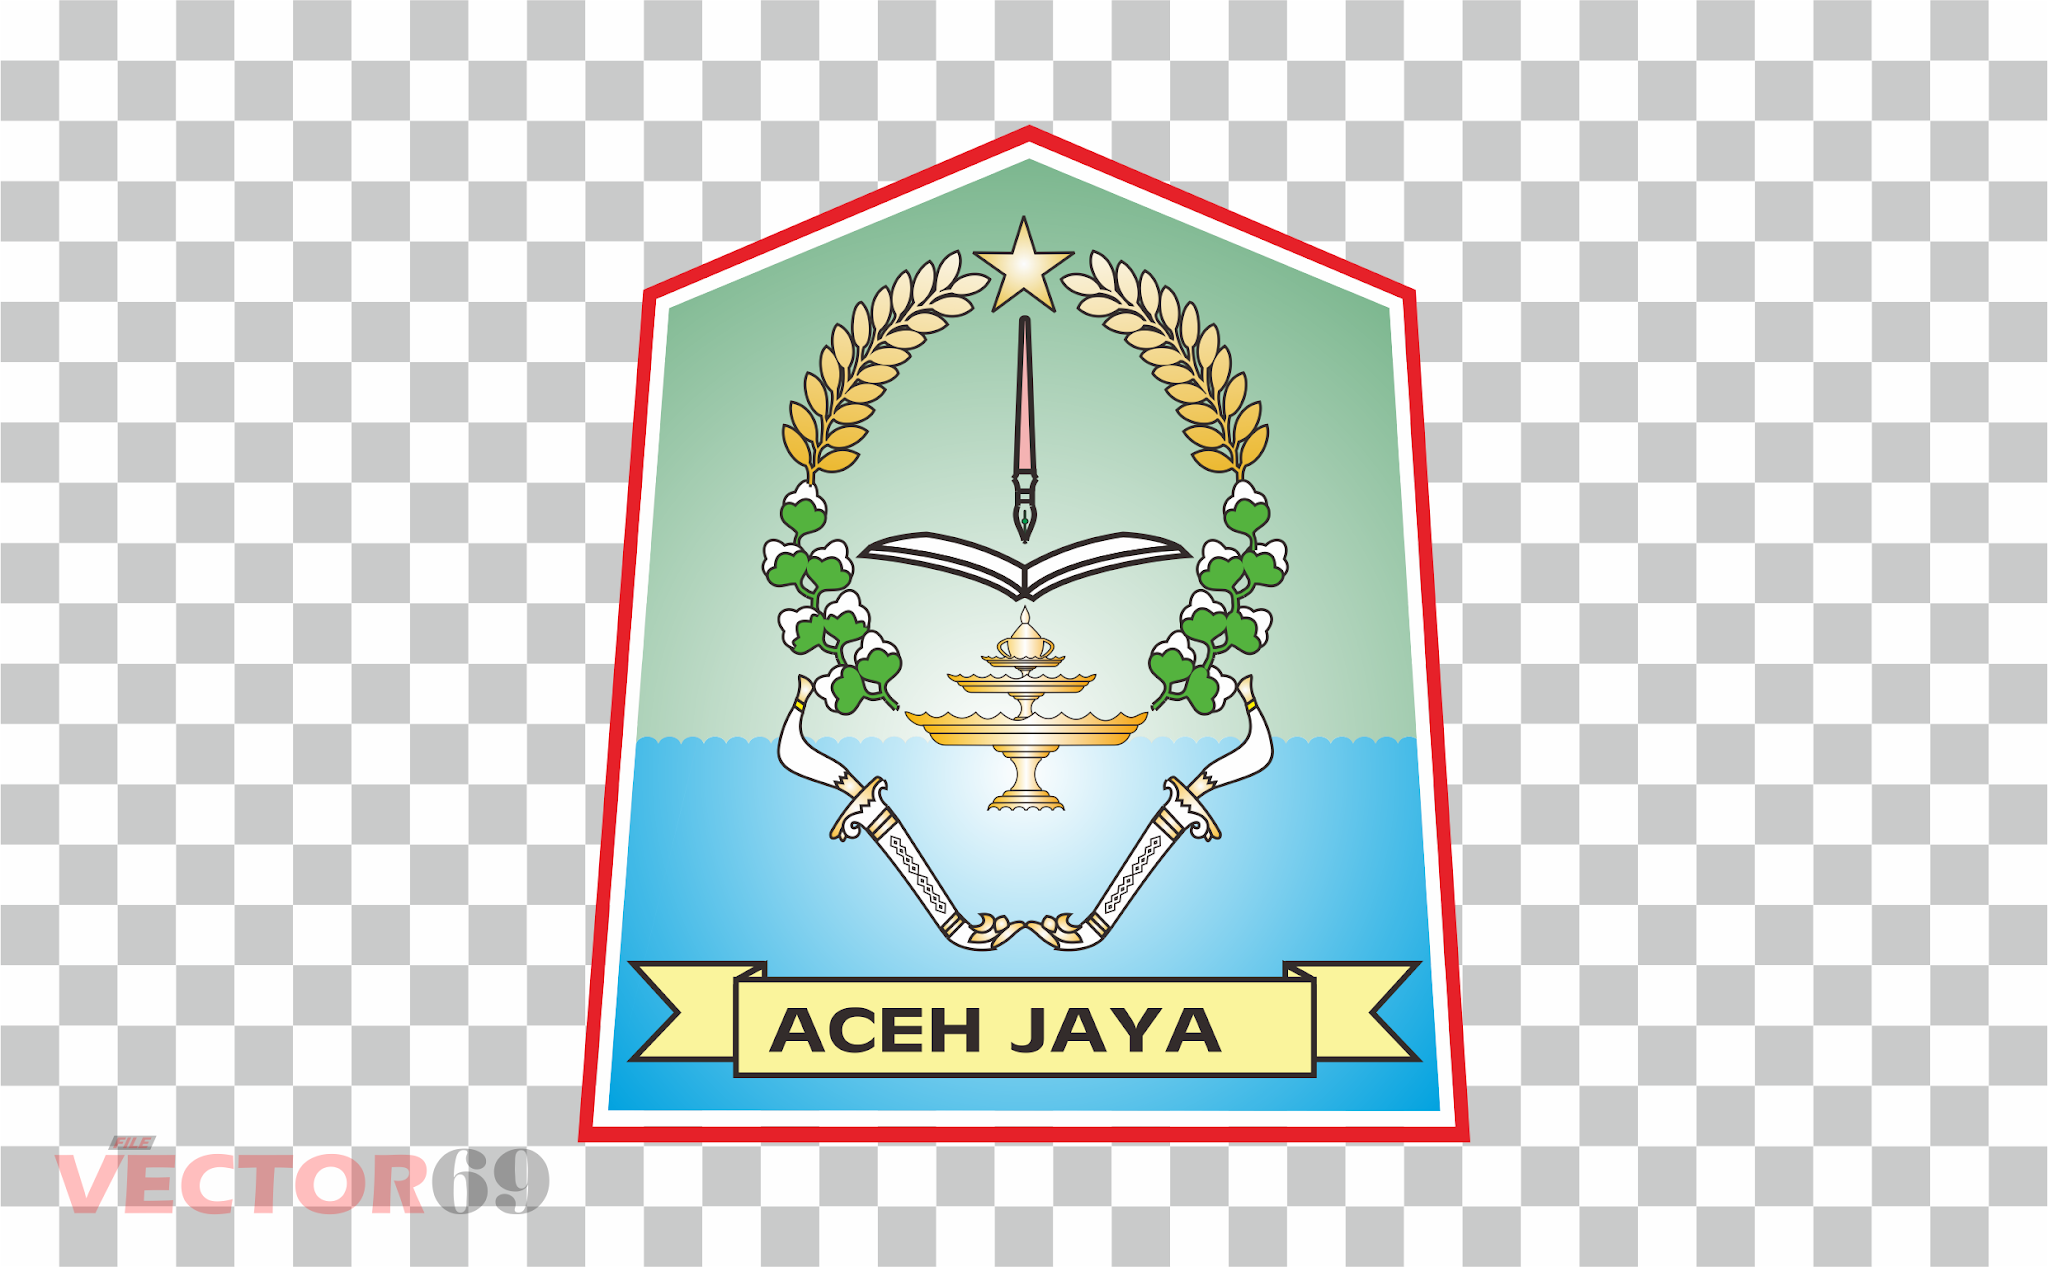 Kabupaten Aceh Jaya Logo - Download Vector File PNG (Portable Network Graphics)